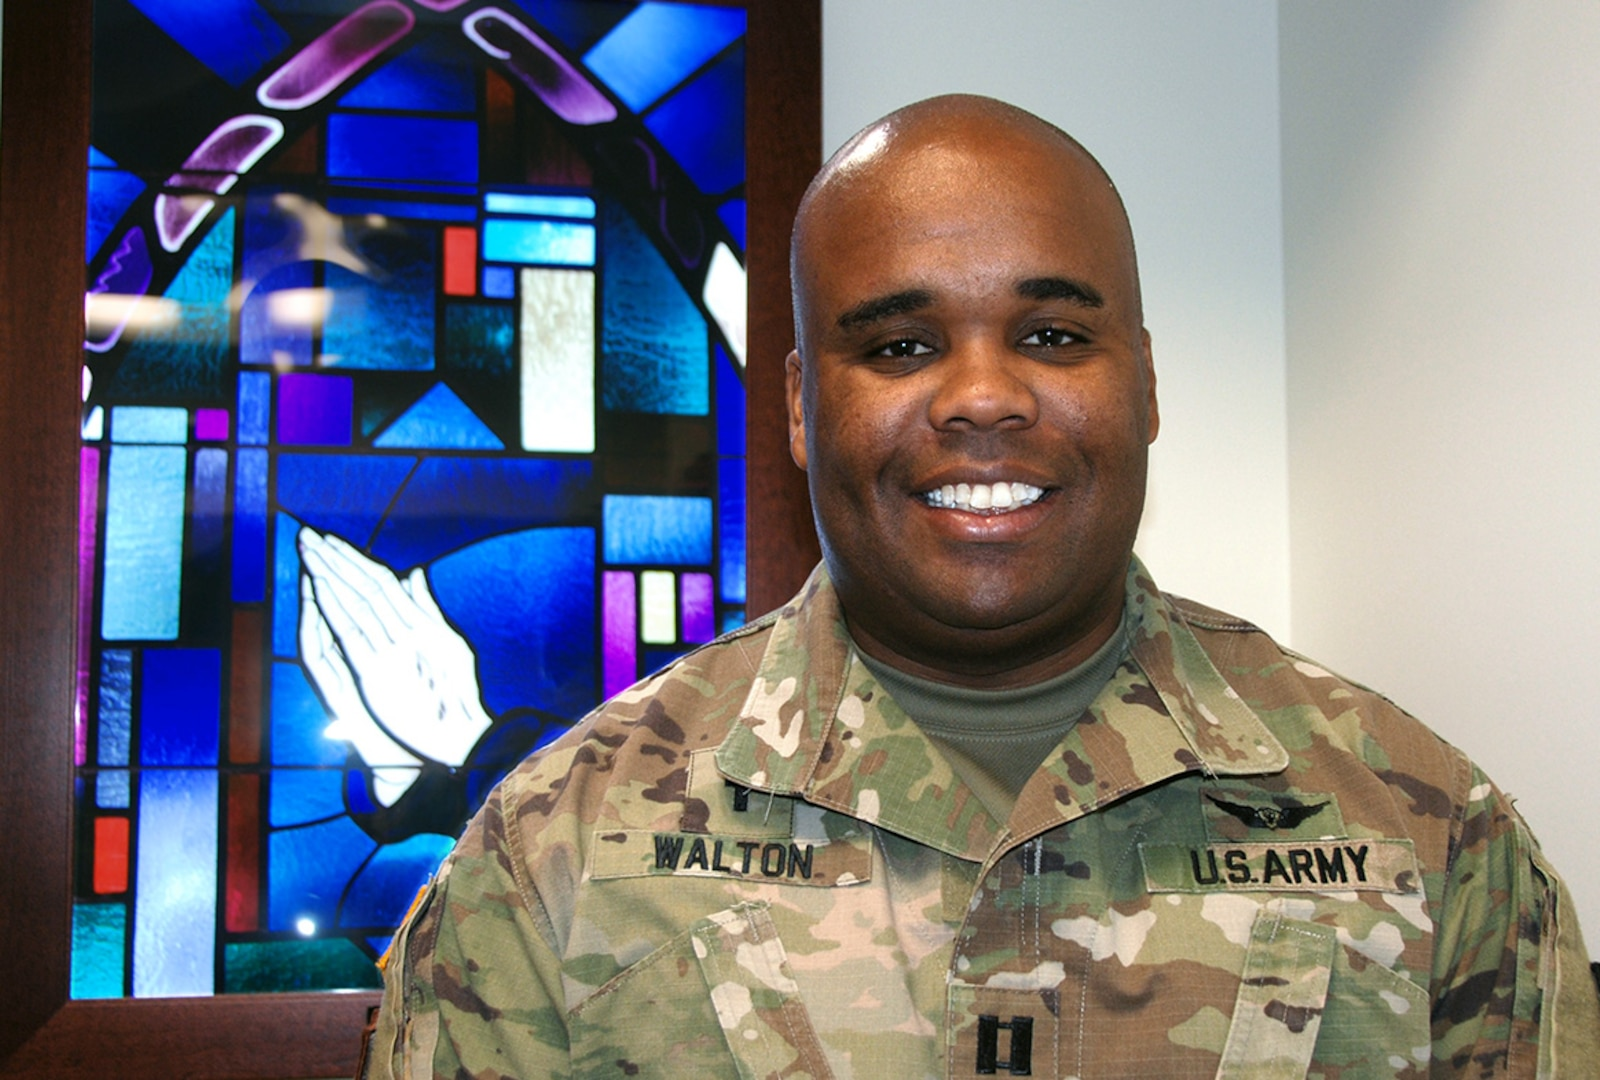 Army Capt. Demetrius Walton began his Army career as an enlisted soldier, in the intelligence field.